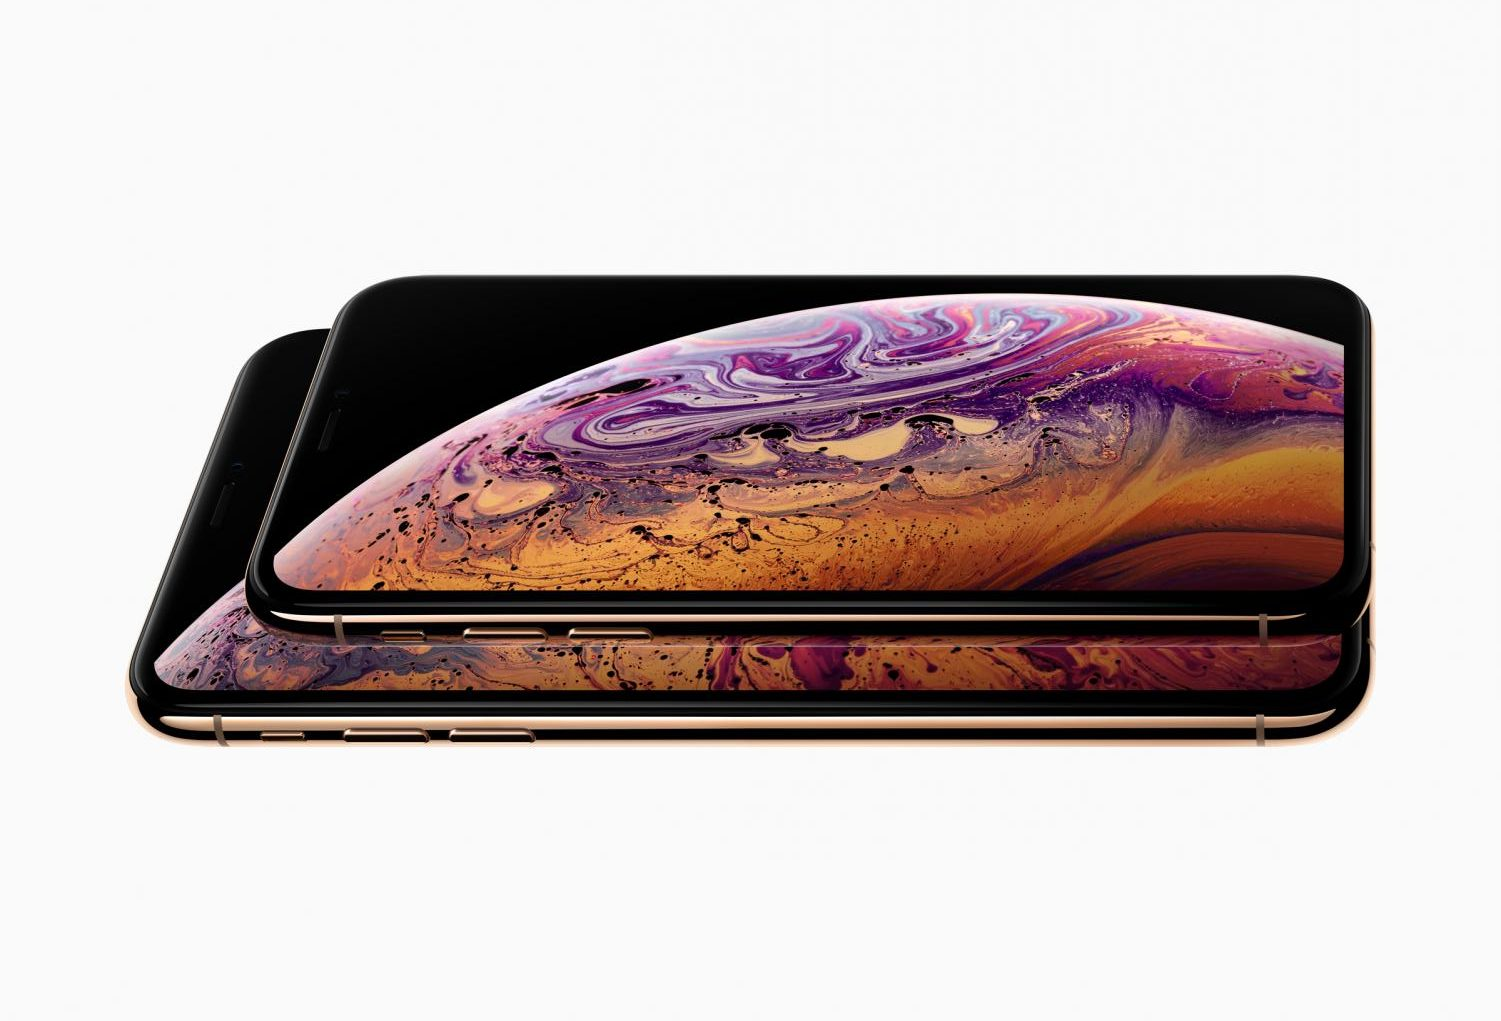 The new iPhone Xs and Xs Max were announced Wednesday at Apple Park. They will go on sale for pre-order starting September 14.